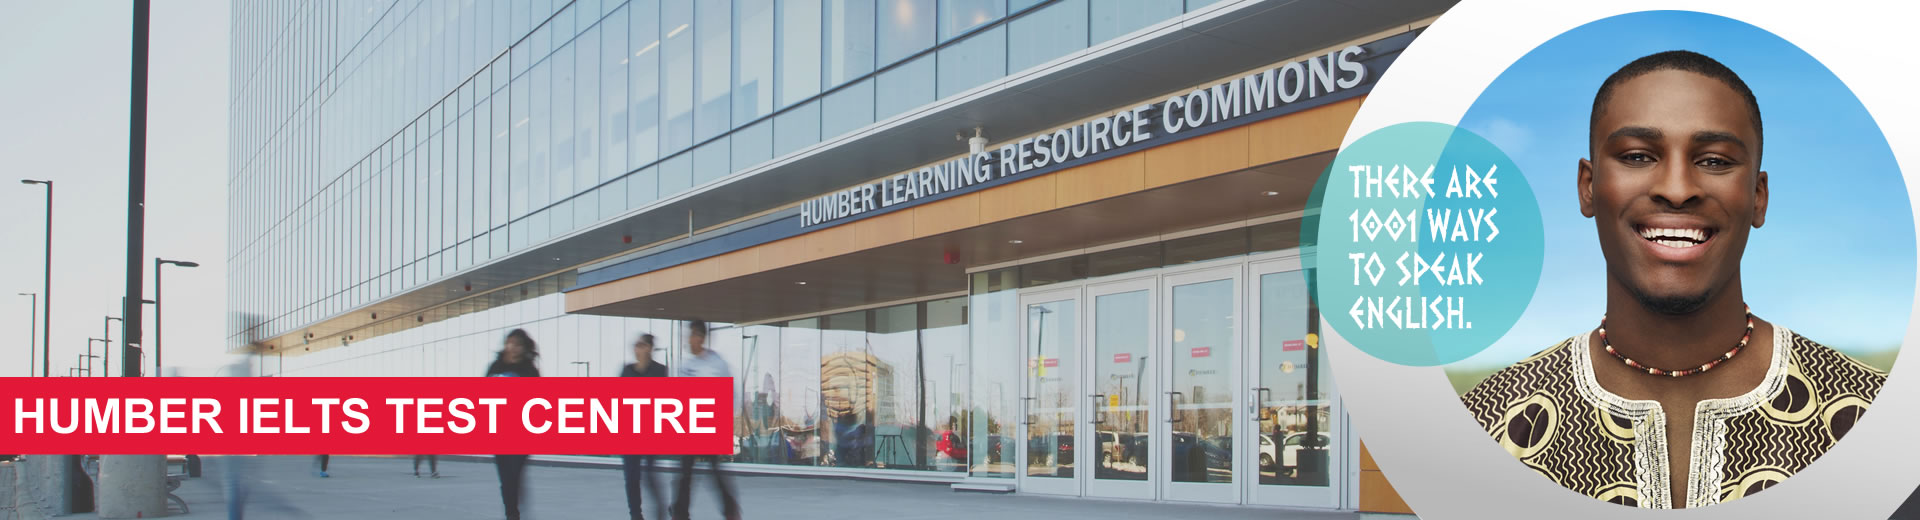 Humber IELTS Test Centre